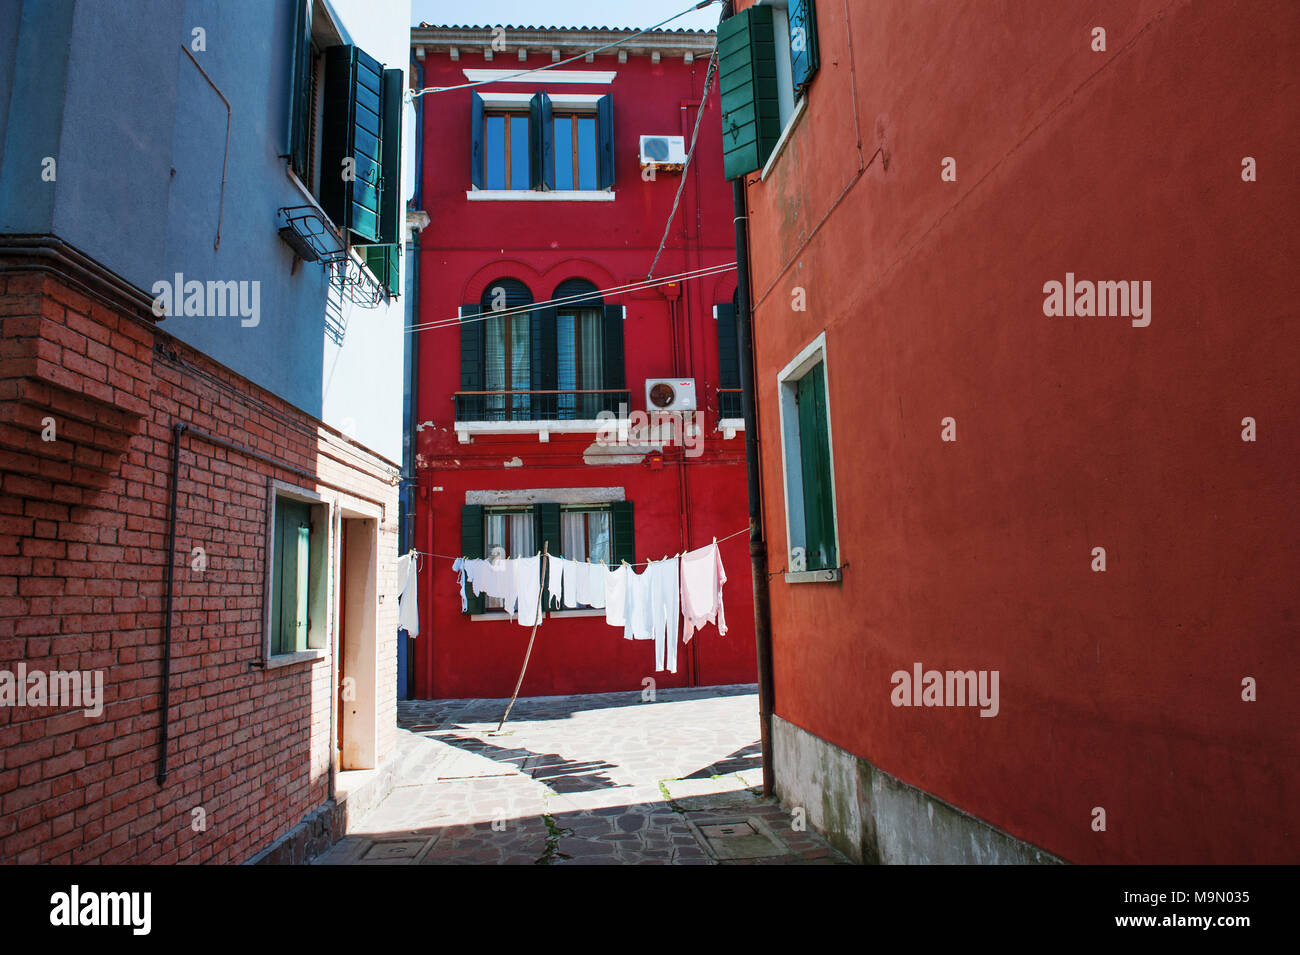 Street and colored buildings in Burano island, Venice, Italy, Europe - Stock Image